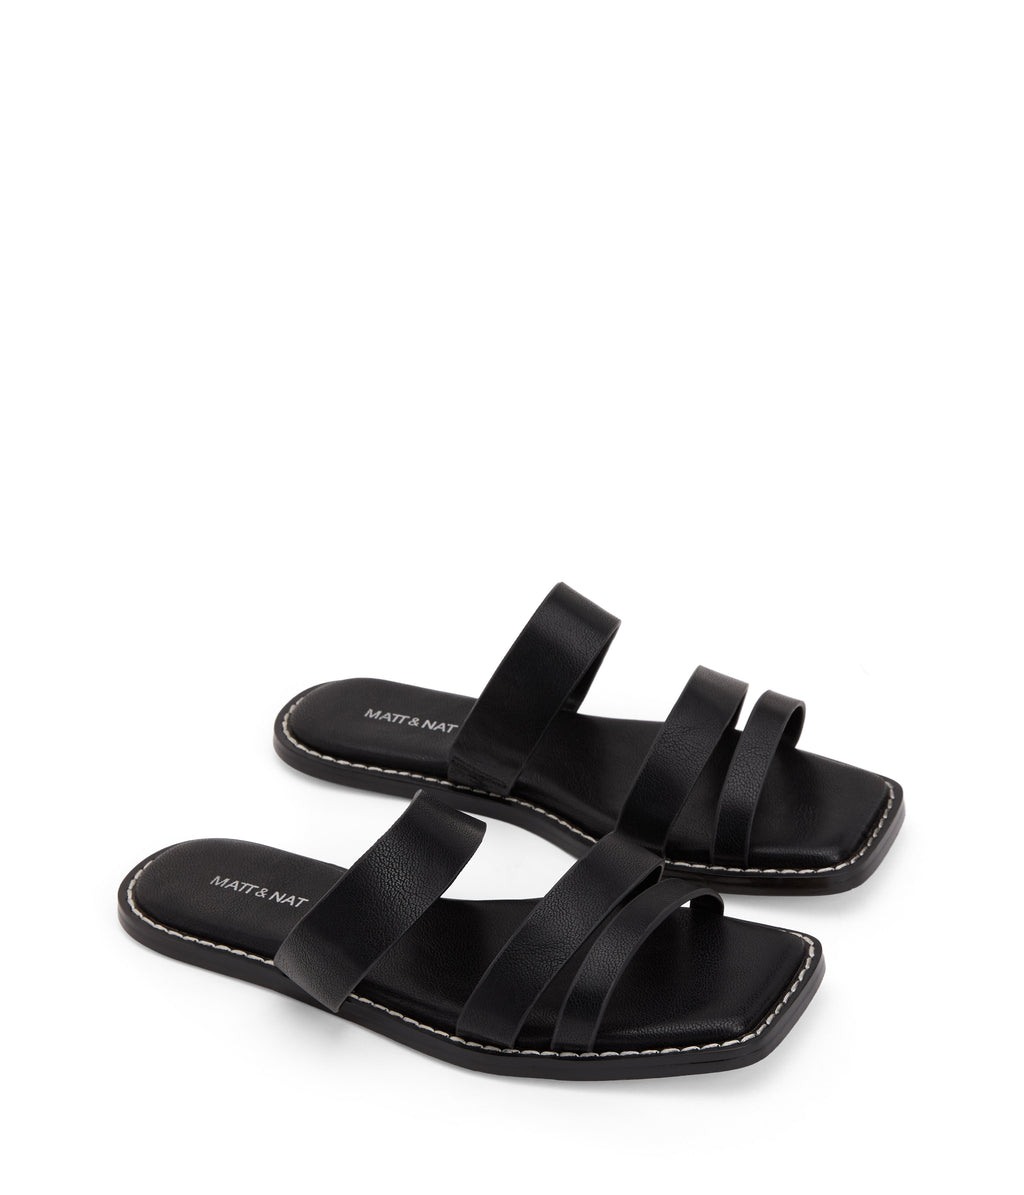 Matt & Nat ANZU Sandals